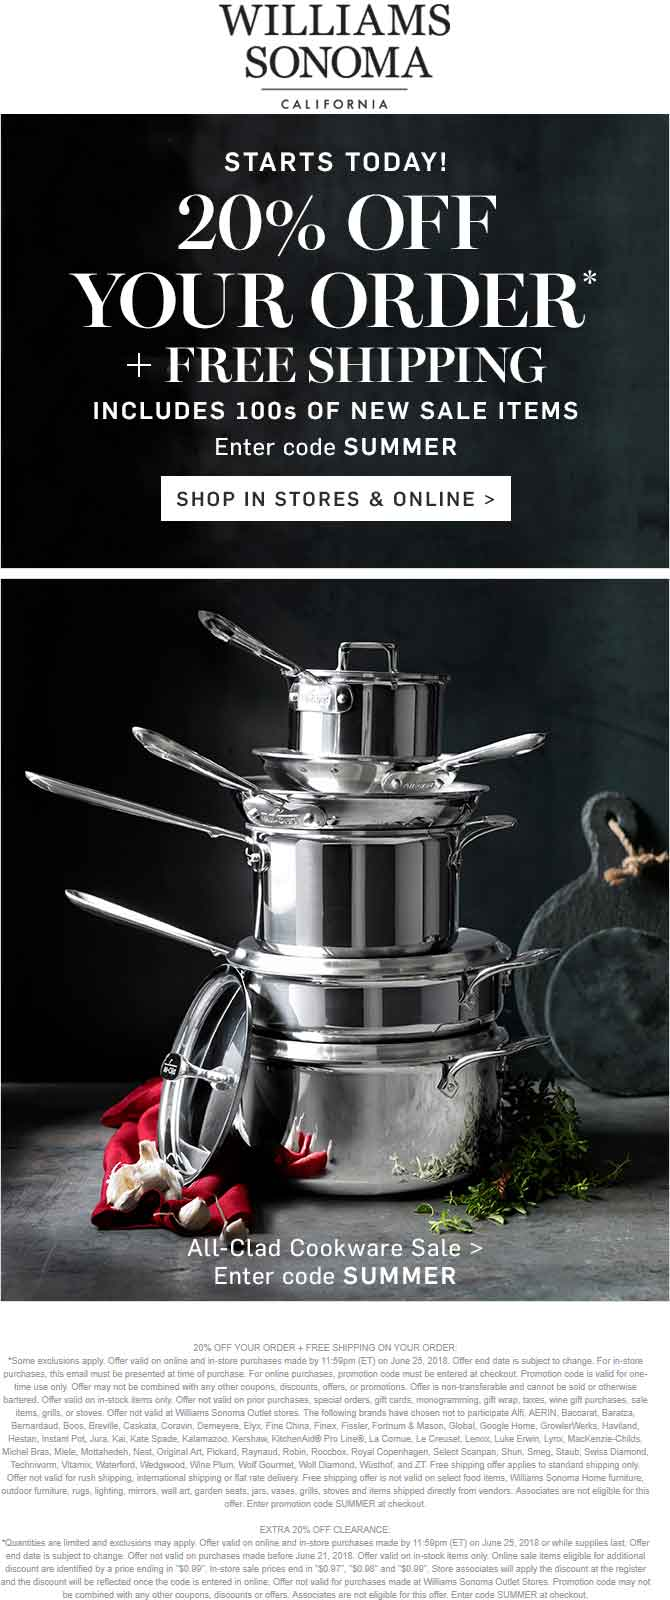 Williams Sonoma Coupon December 2018 20% off at Williams Sonoma, or online via promo code SUMMER